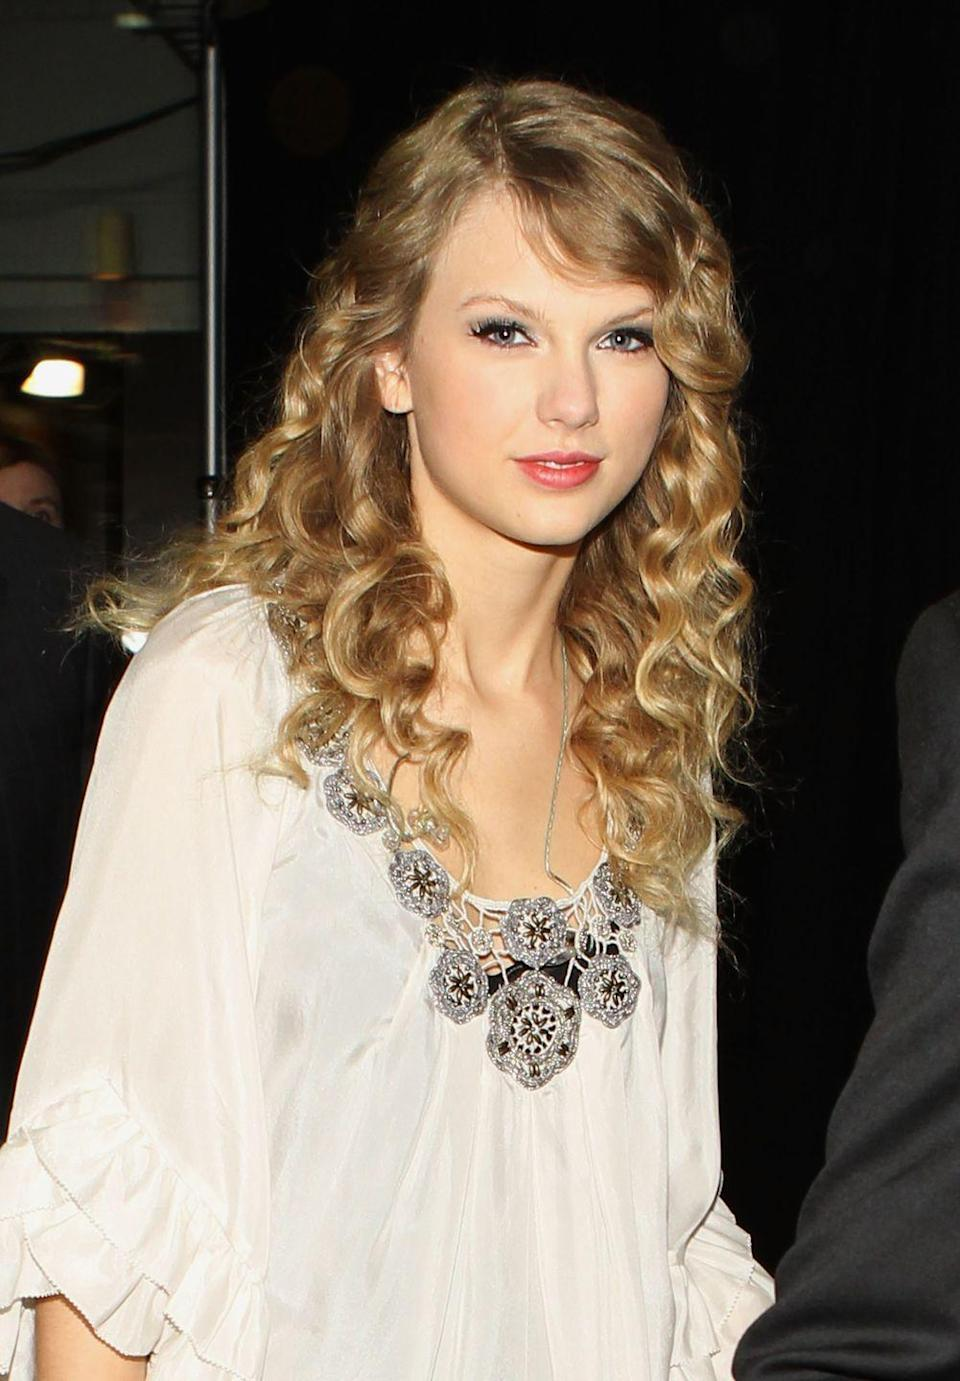 """<p>Taylor Swift wrote this song about John Mayer, who she dated from late 2009 to early 2010. He told <a href=""""https://www.rollingstone.com/music/music-news/john-mayer-taylor-swifts-dear-john-song-humiliated-me-107169/"""" rel=""""nofollow noopener"""" target=""""_blank"""" data-ylk=""""slk:Rolling Stone"""" class=""""link rapid-noclick-resp""""><em>Rolling Stone</em></a> that he felt """"really humiliated"""" by the song. """"It made me feel terrible,"""" he said. """"Because I didn't deserve it. I'm pretty good at taking accountability now, and I never did anything to deserve that. It was a really lousy thing for her to do."""" Yikes. </p>"""